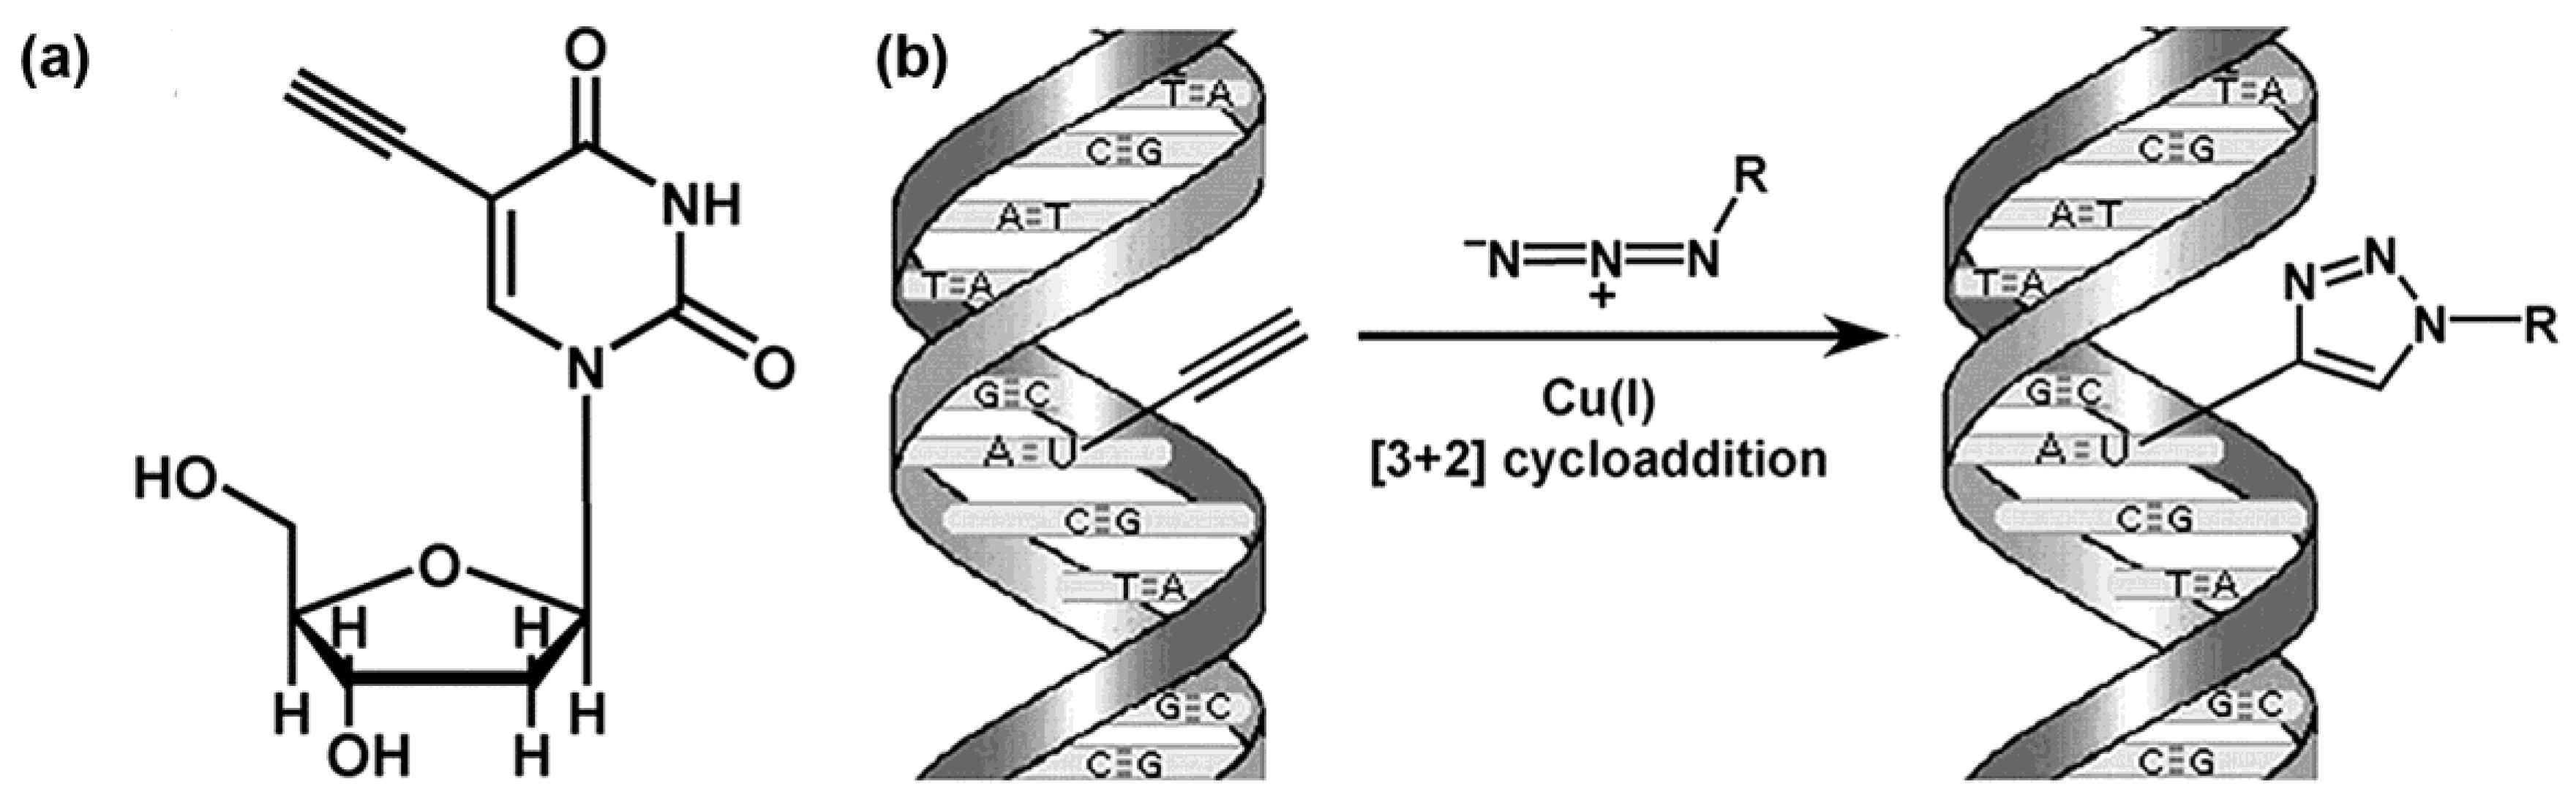 Molecules | Free Full-Text | DNA Replication: From